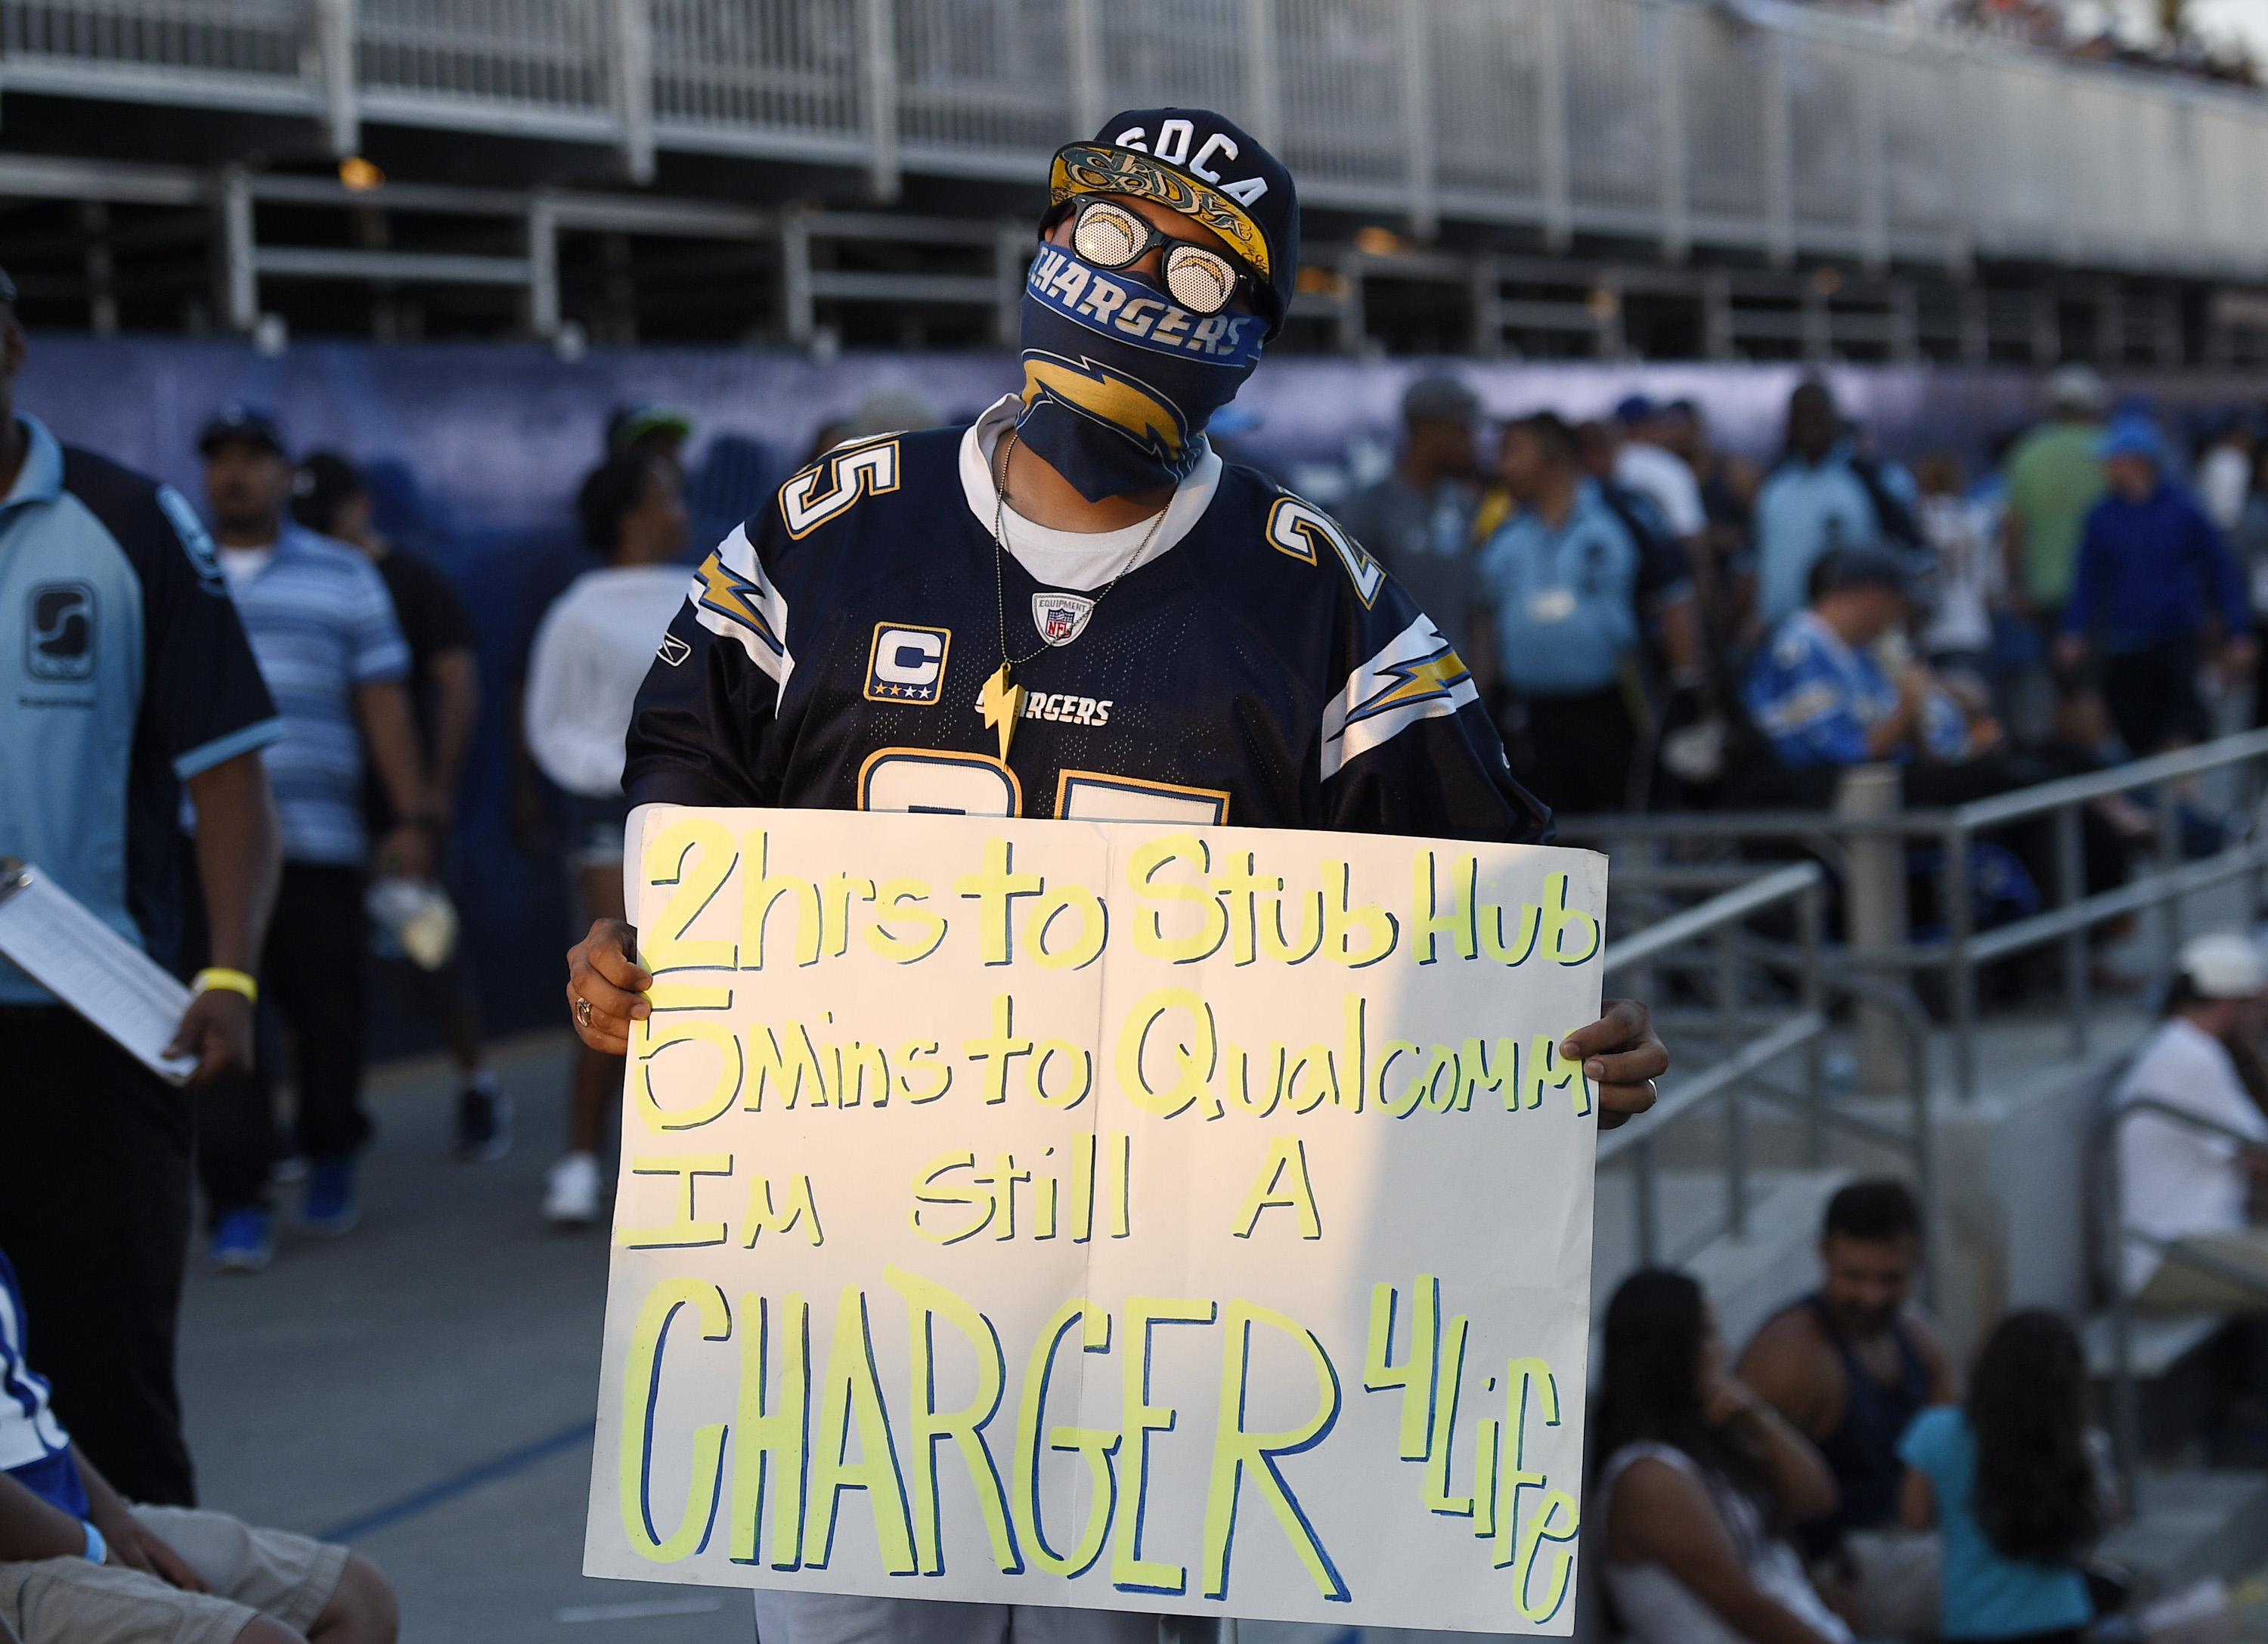 A fan holds a sign as the Los Angeles Chargers make their StubHub Center debut against Seattle Seahawks August 13, 2017, in Carson, California. (Photo by Kevork Djansezian/Getty Images)